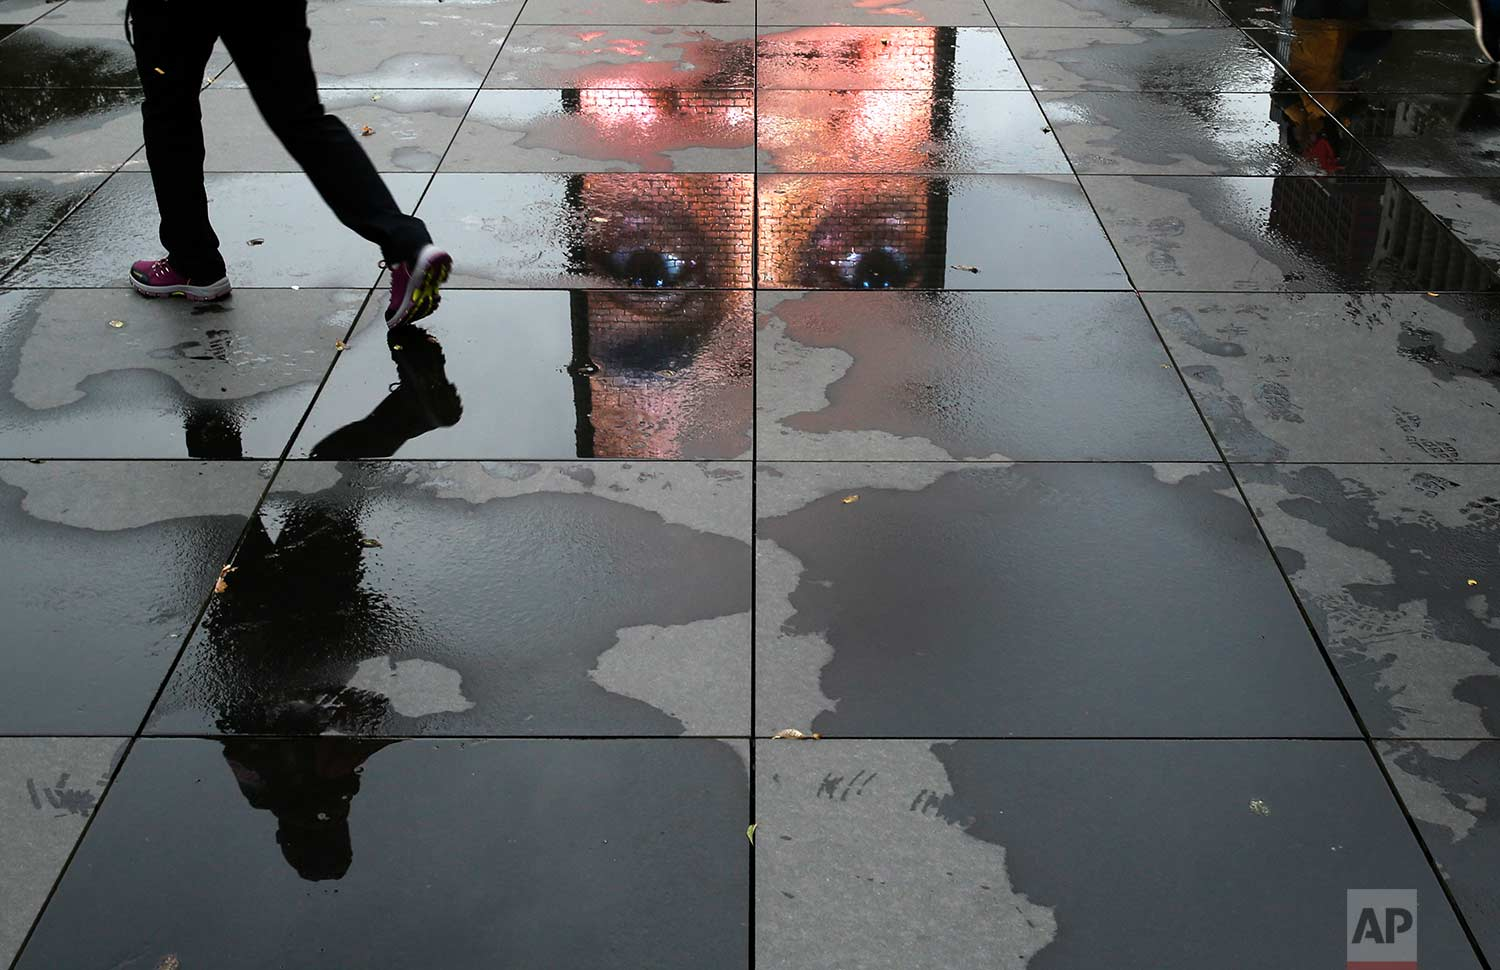 A pedestrian walks through puddles reflecting a projected face displayed on a video sculpture at the Crown Fountain in Chicago's Millennium Park, Tuesday, Nov. 21, 2017, in Chicago. (AP Photo/Charles Rex Arbogast)